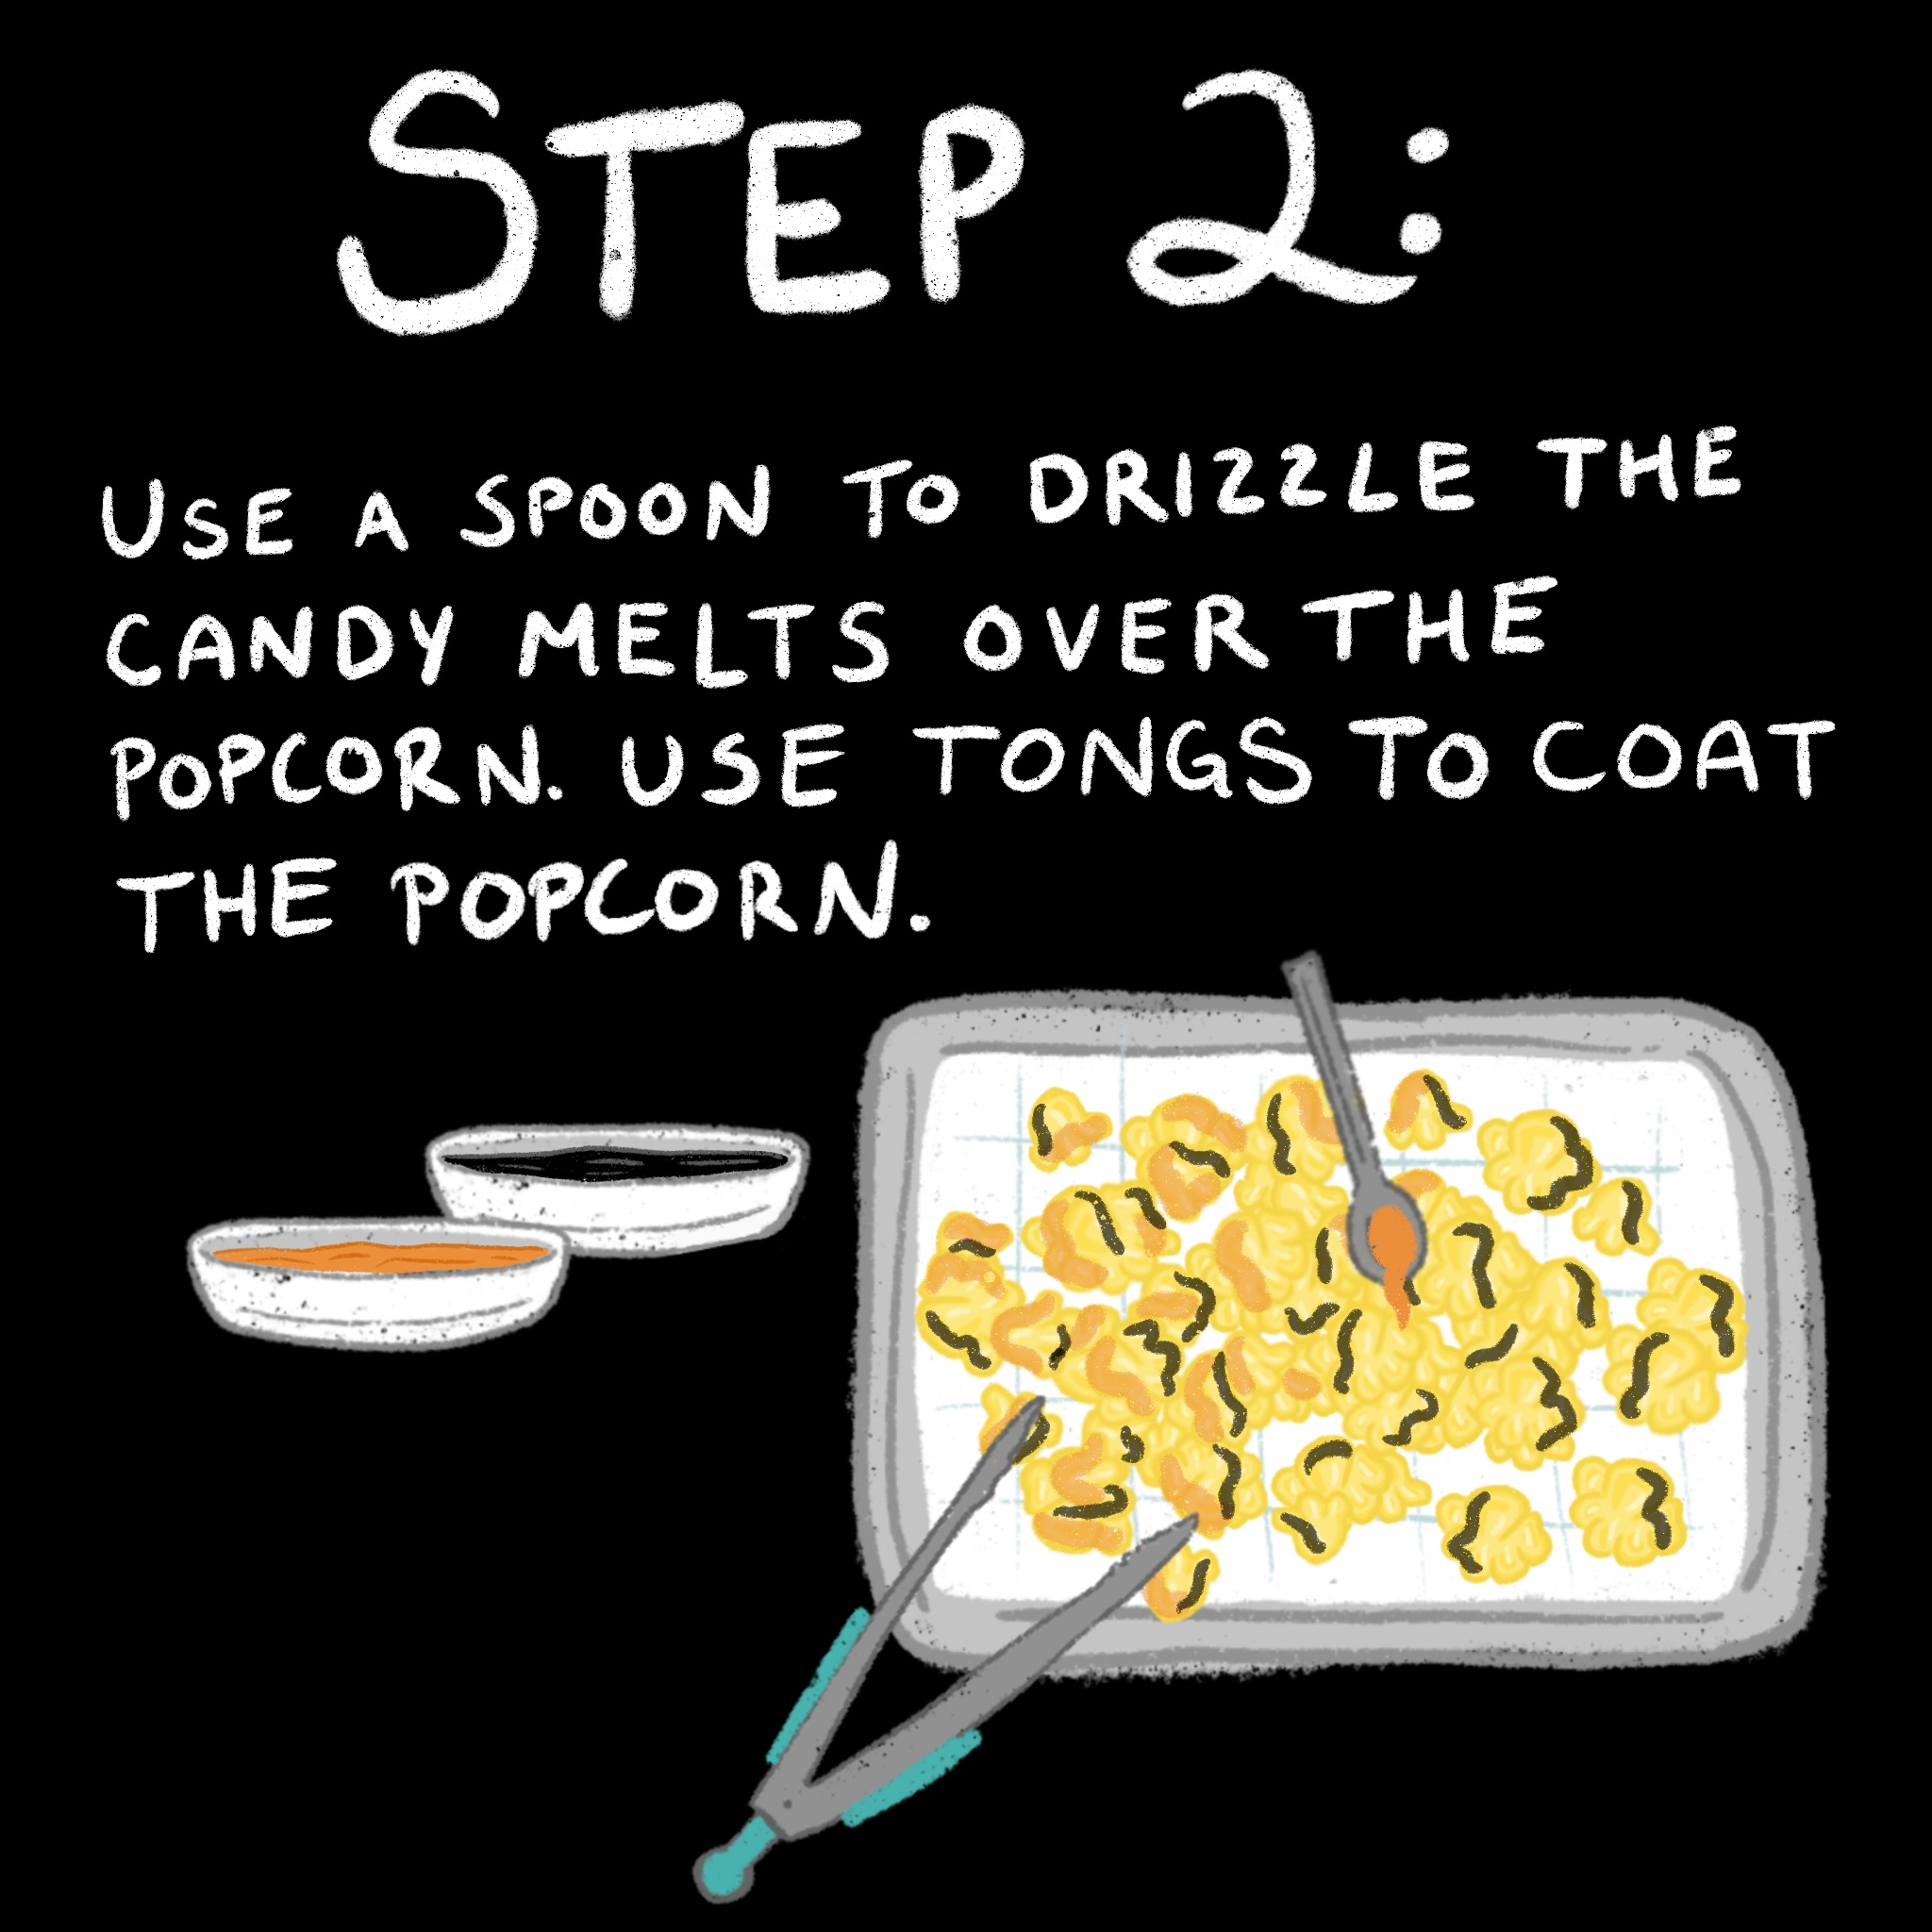 step two: use a spoon to drizzle the candy melts over the popcorn. Use tongs to coat the popcorn